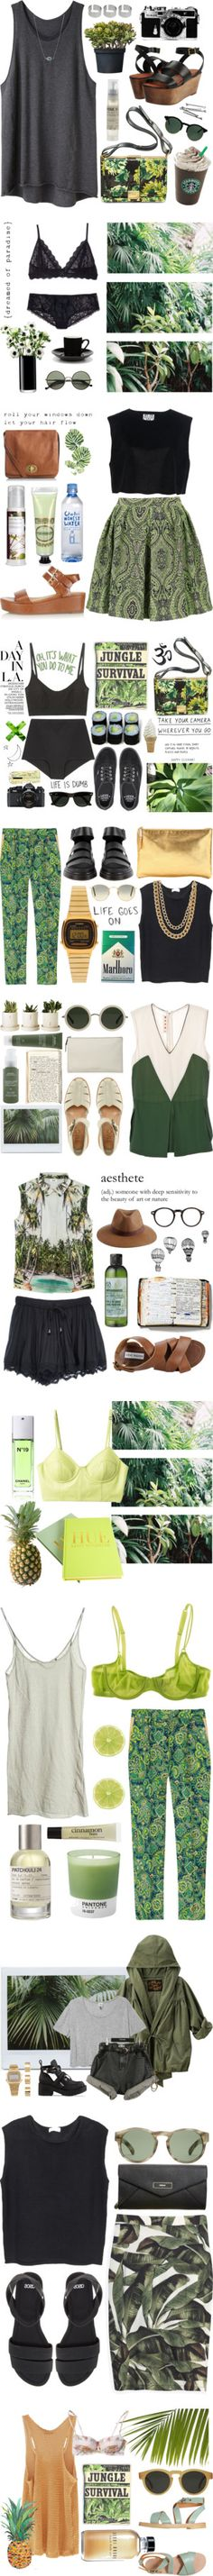 Jungle by dasha-volodina on Polyvore featuring мода, 3.1 Phillip Lim, Kenzo, ASOS, Le Labo, Elizabeth and James, Nikon, American Apparel, BOBBY and LSA International